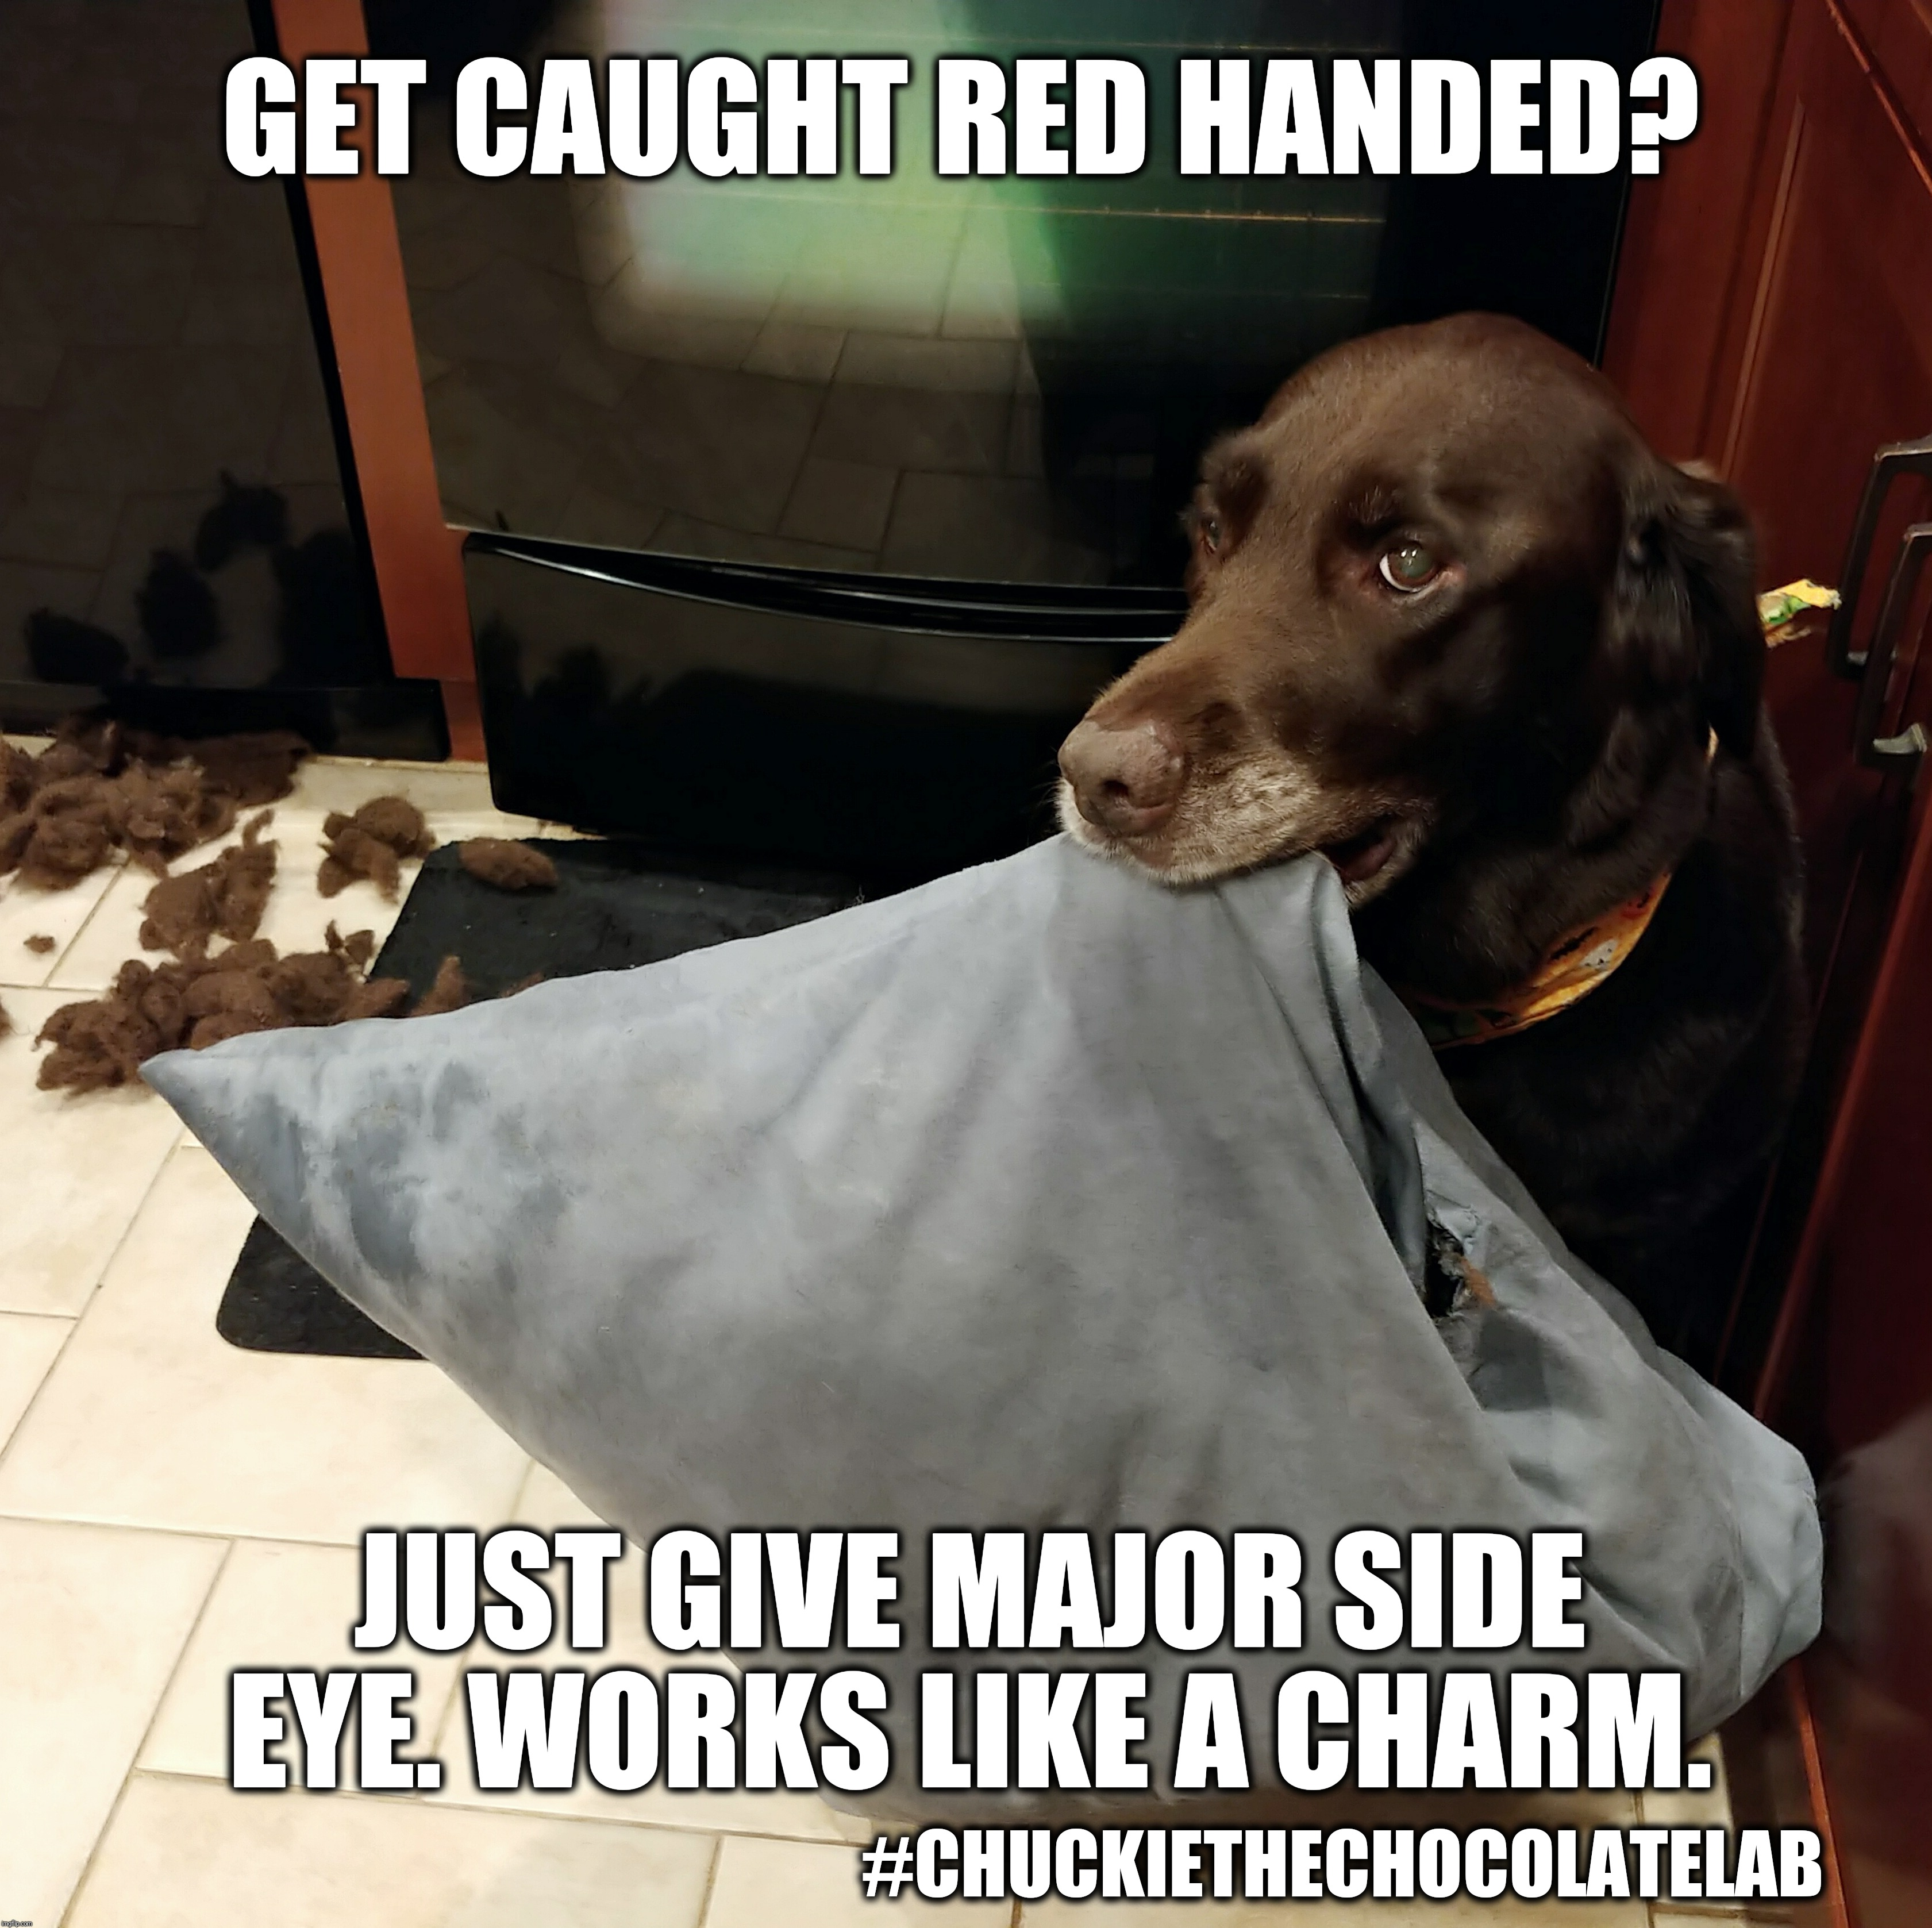 Dog side eye | GET CAUGHT RED HANDED? #CHUCKIETHECHOCOLATELAB JUST GIVE MAJOR SIDE EYE. WORKS LIKE A CHARM. | image tagged in chuckie the chocolate lab,side eye,funny,dogs,memes,labrador | made w/ Imgflip meme maker